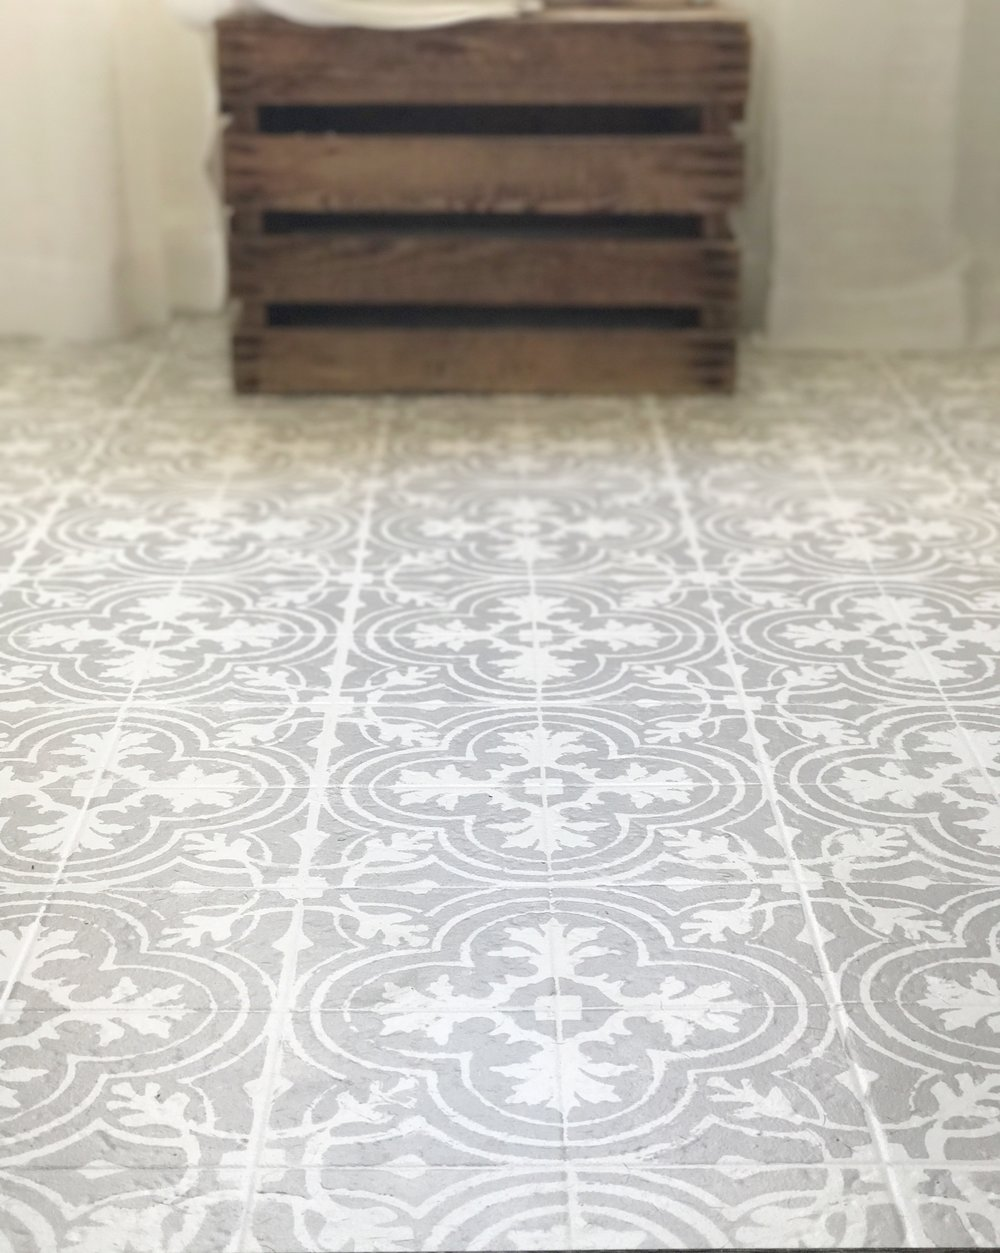 Plum pretty decor design co how to paint your linoleum for Patterned linoleum tiles